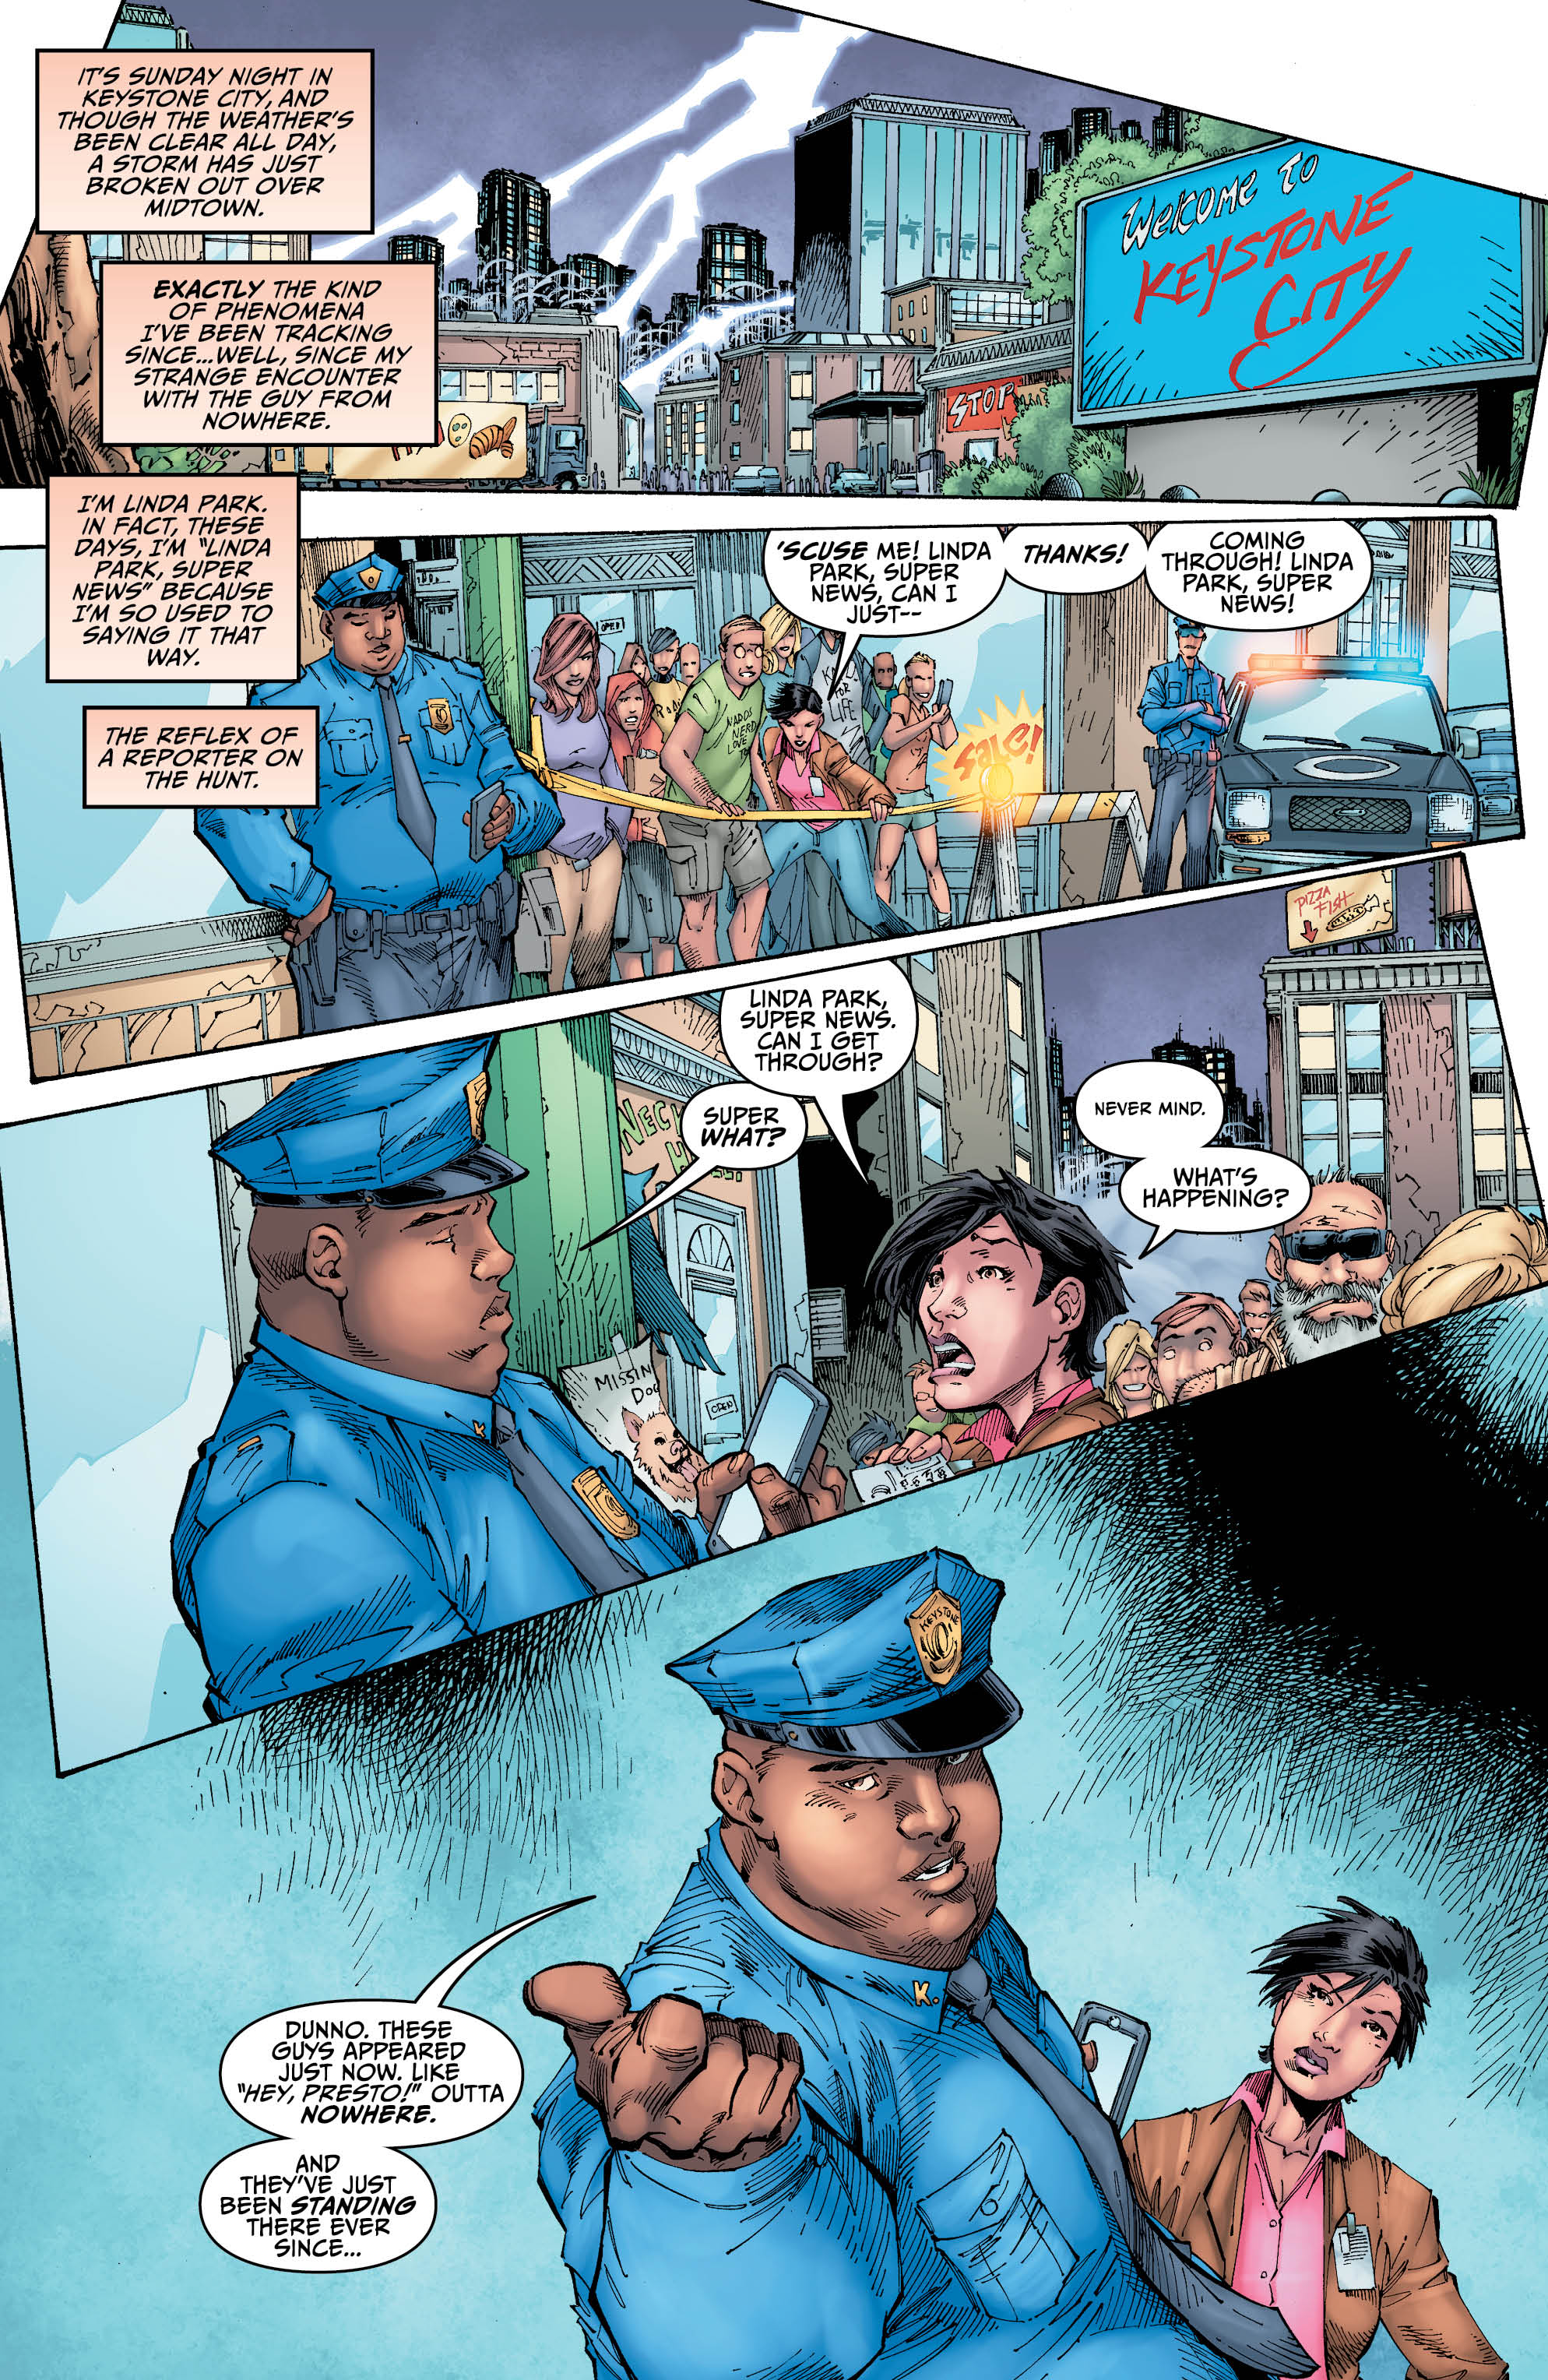 Images from Titans #2. Courtesy of DC Comics.